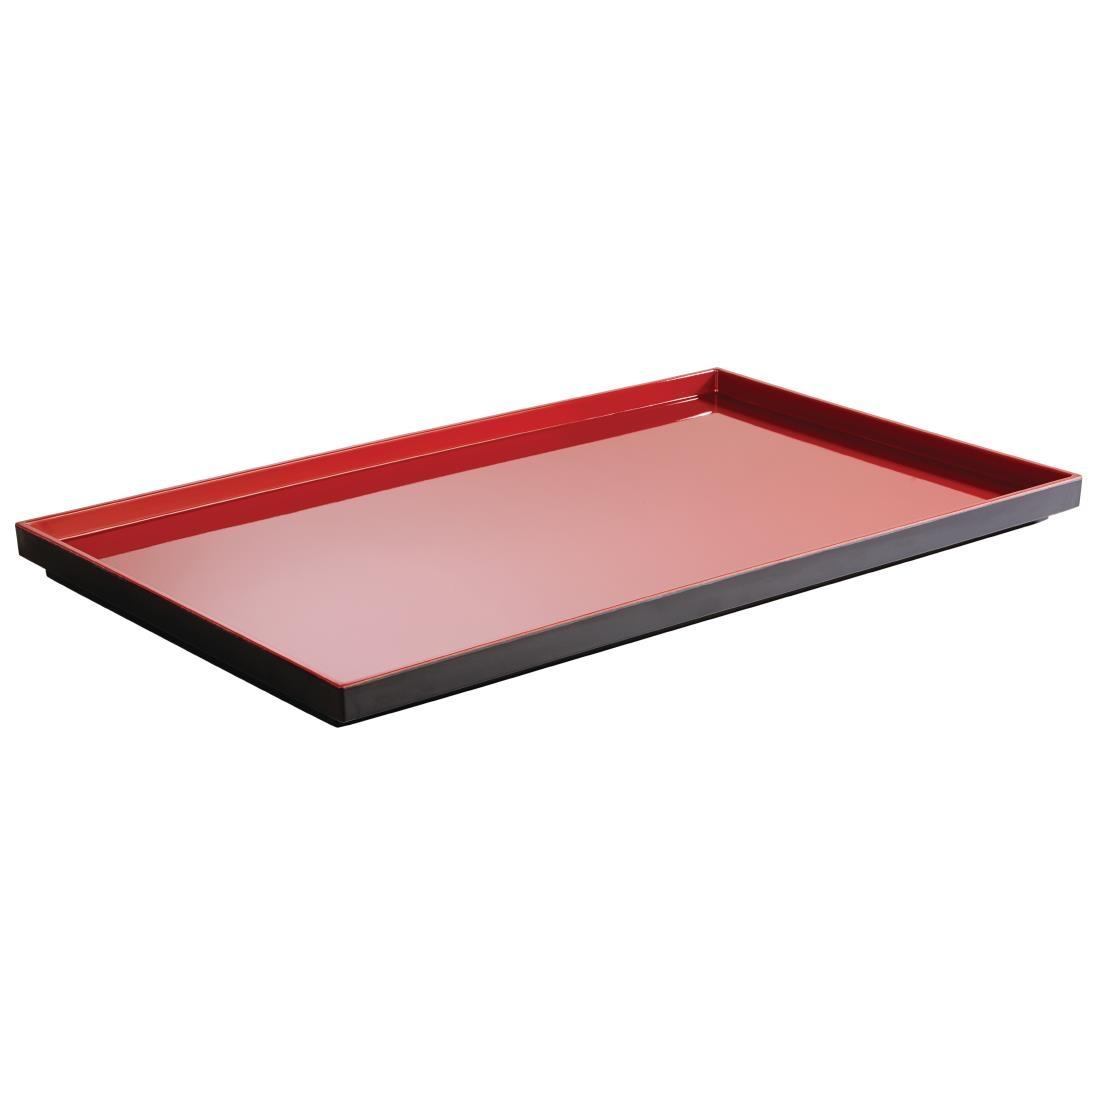 DT774 - APS Asia+  Red Tray GN 1/1 - Each - DT774